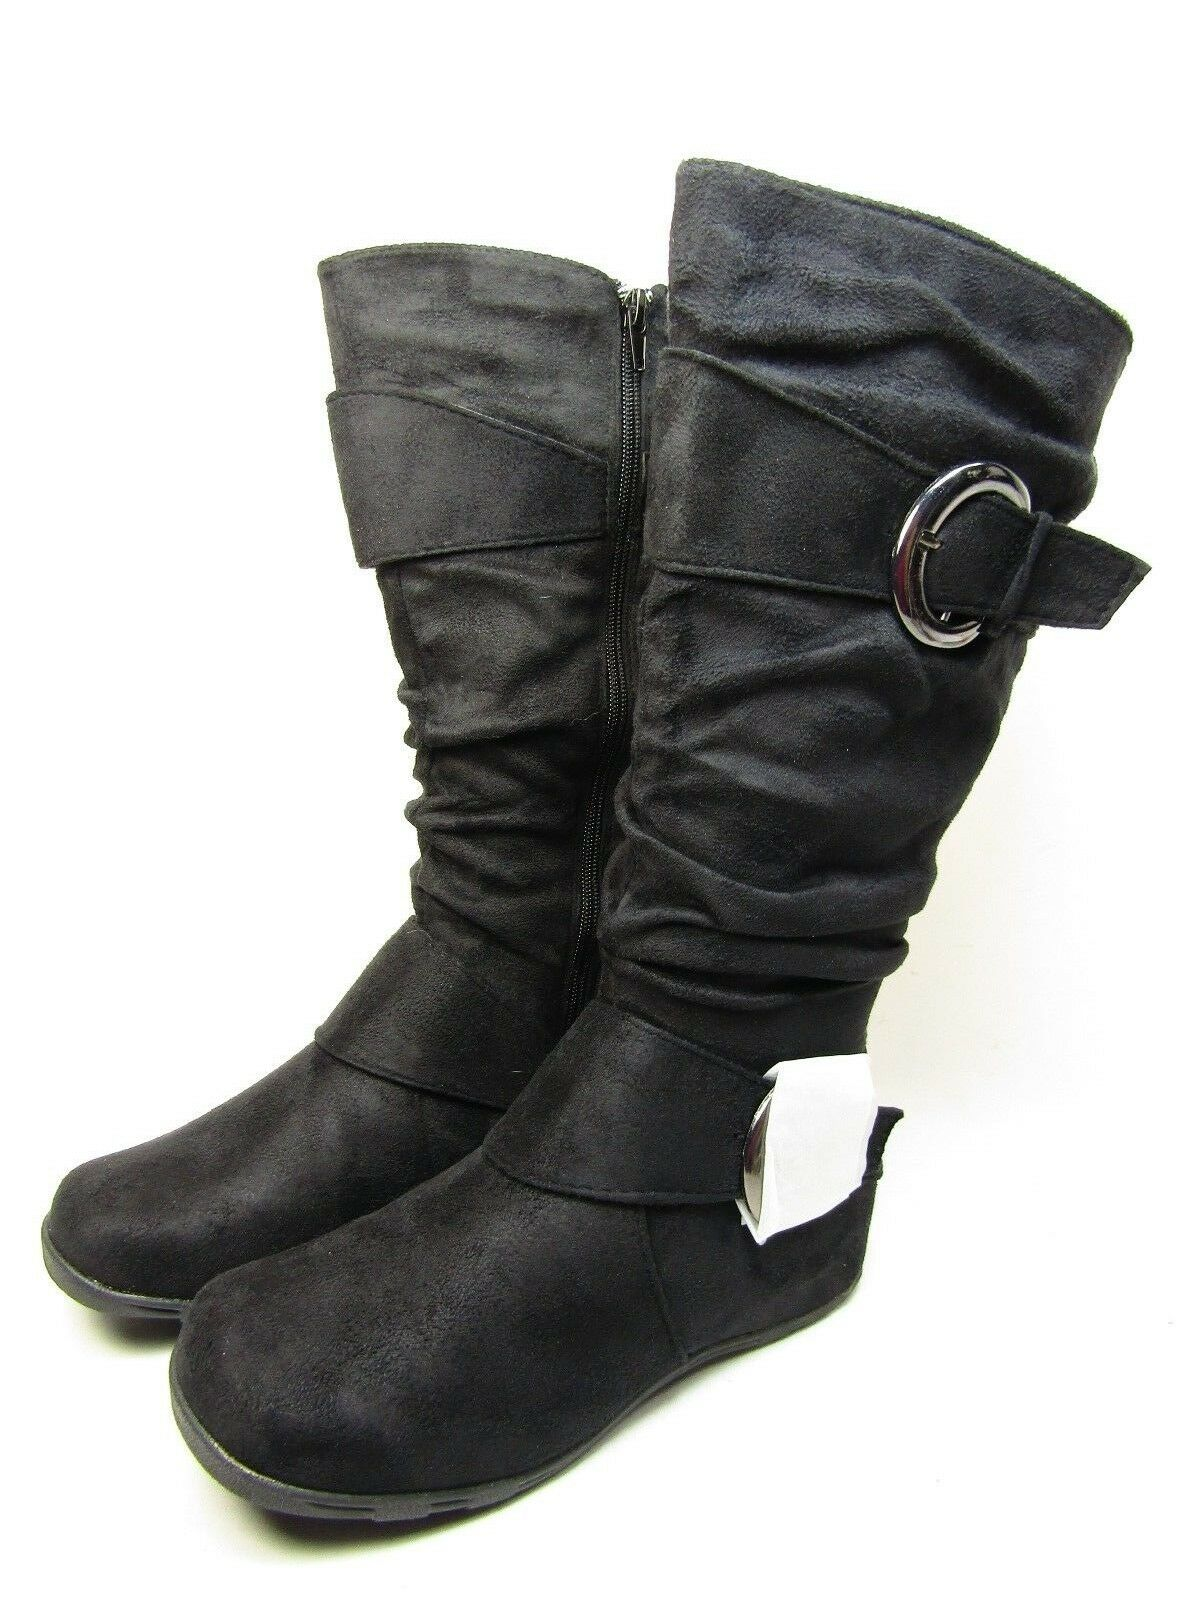 Journee Collection Black Jester-01  Women Boot Black Collection Size 7.5 M 198b66